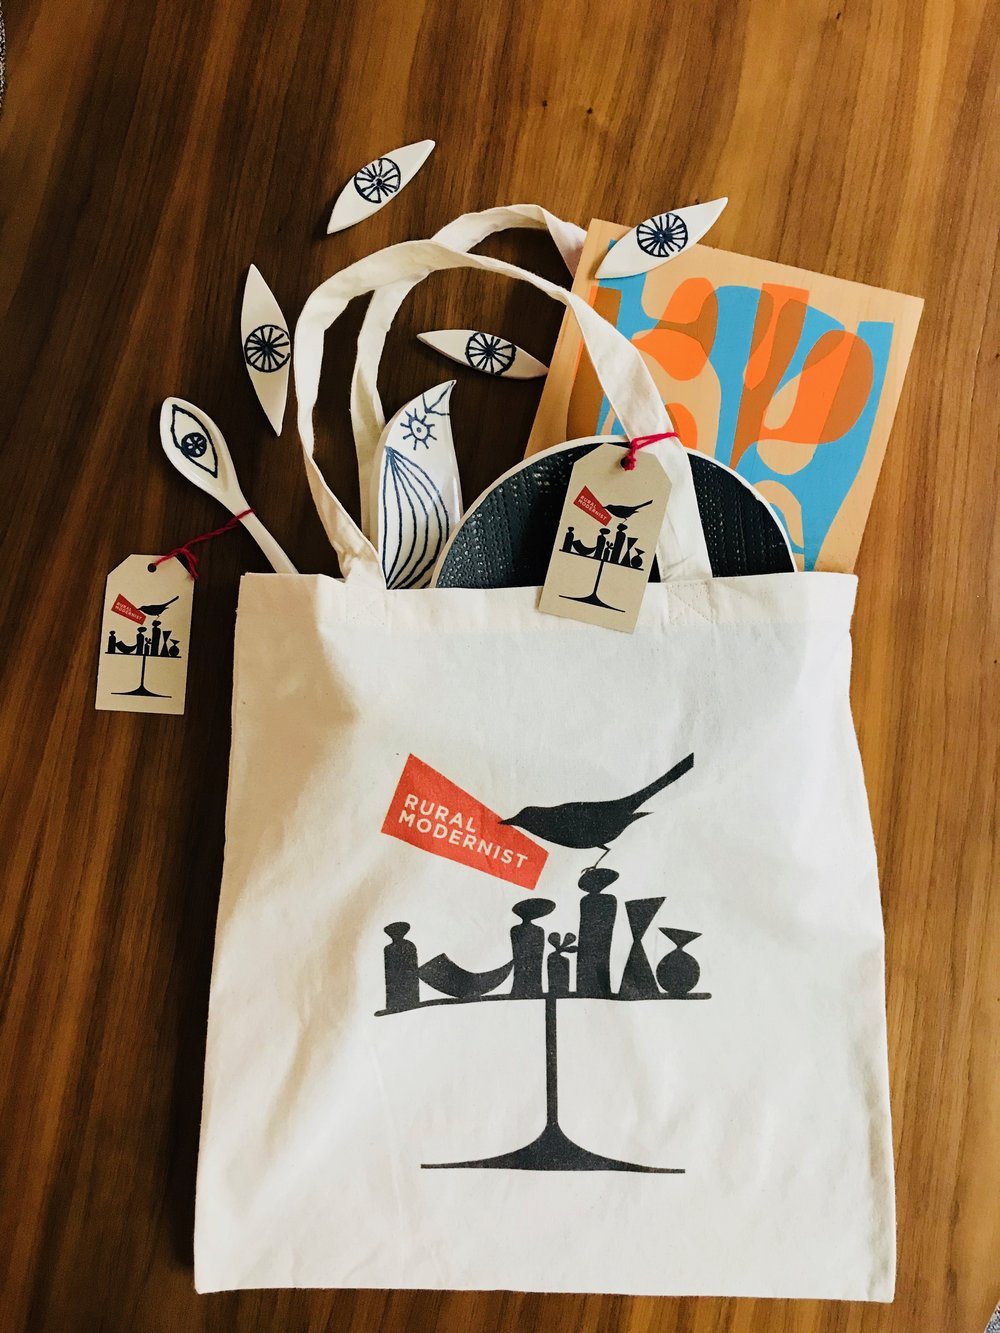 logo tote - TOTE-ally useful and charming cotton tote bag emblazoned with the Rural Modernist bird and vase silhouette illustration by Jason O'Malley.